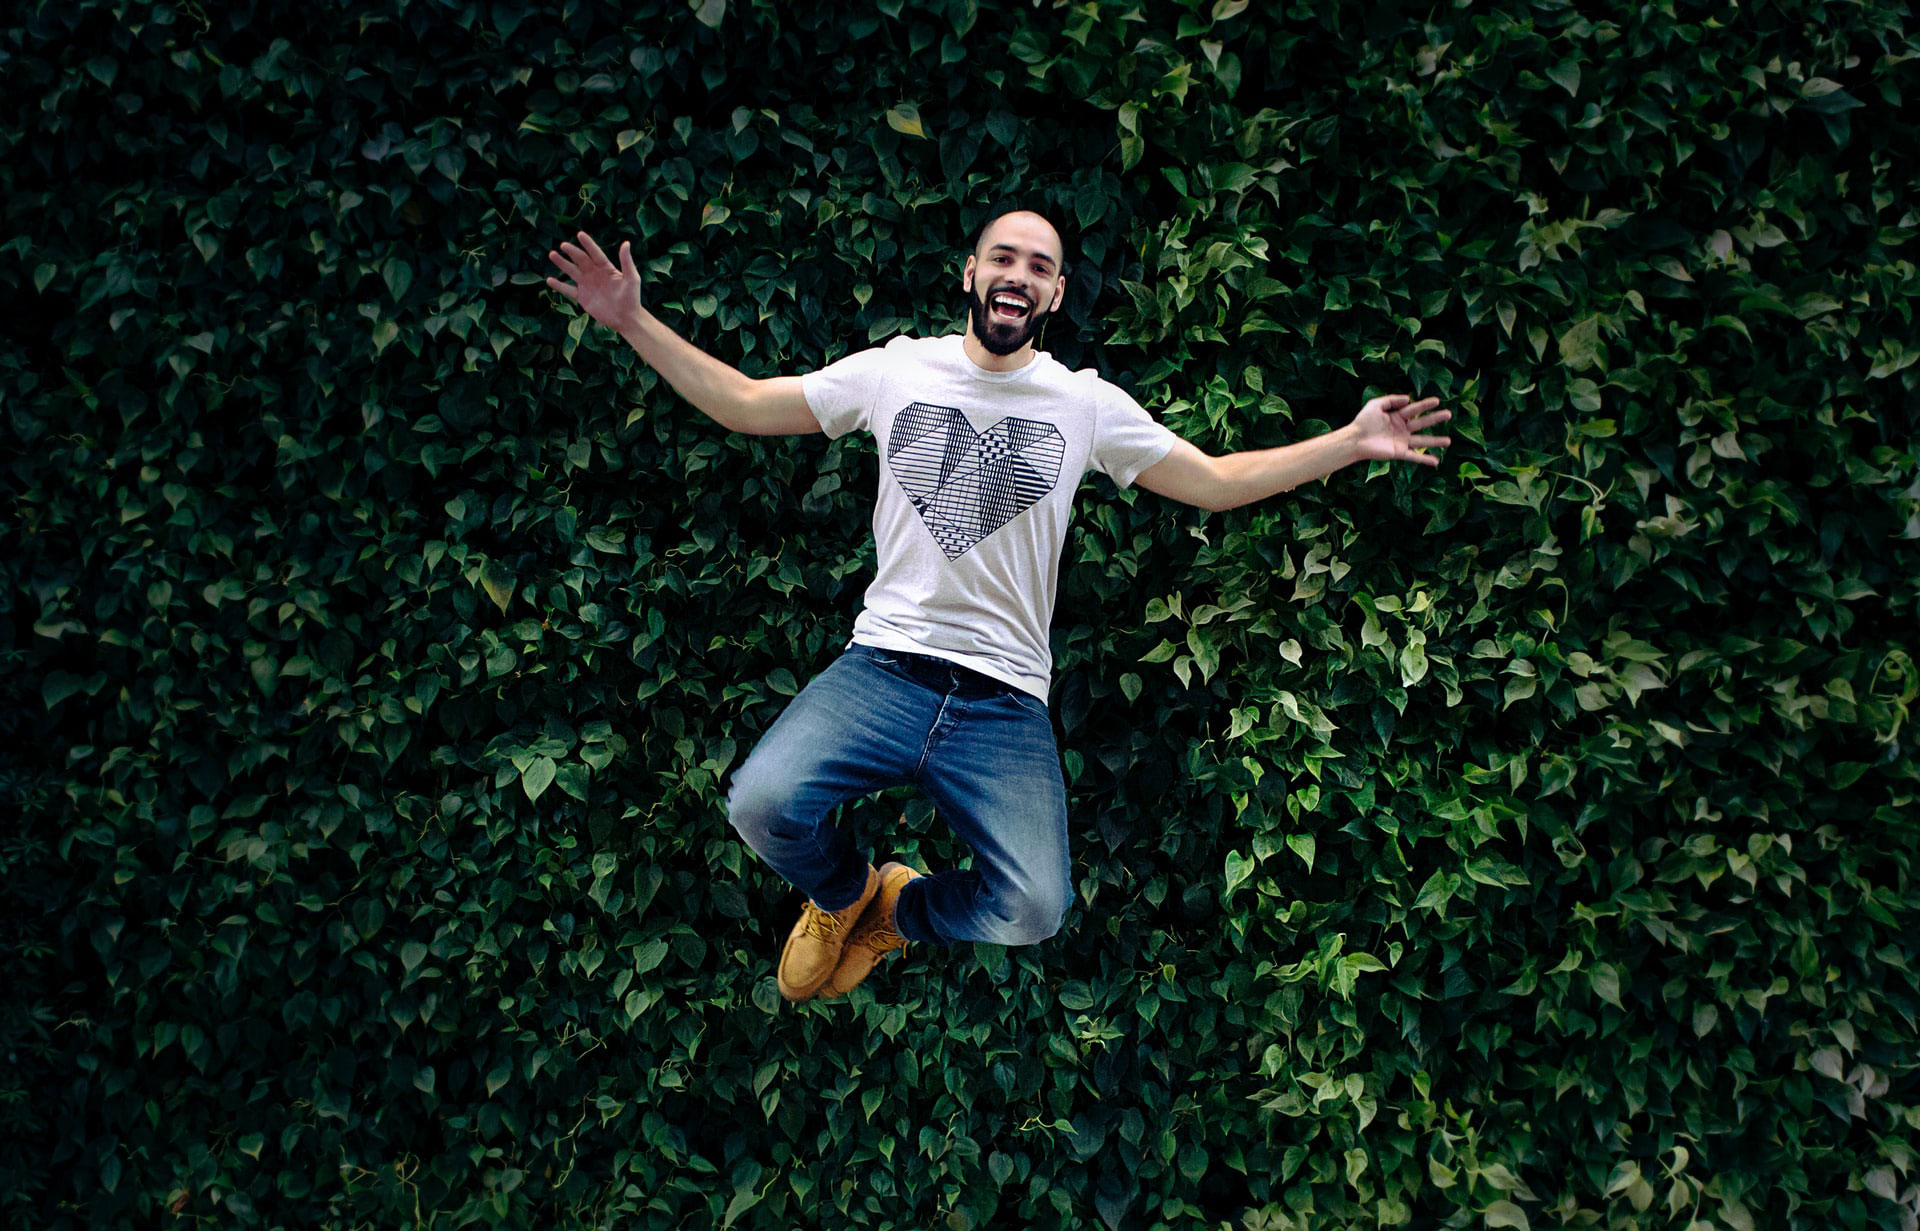 Man jumping with green hedge behind